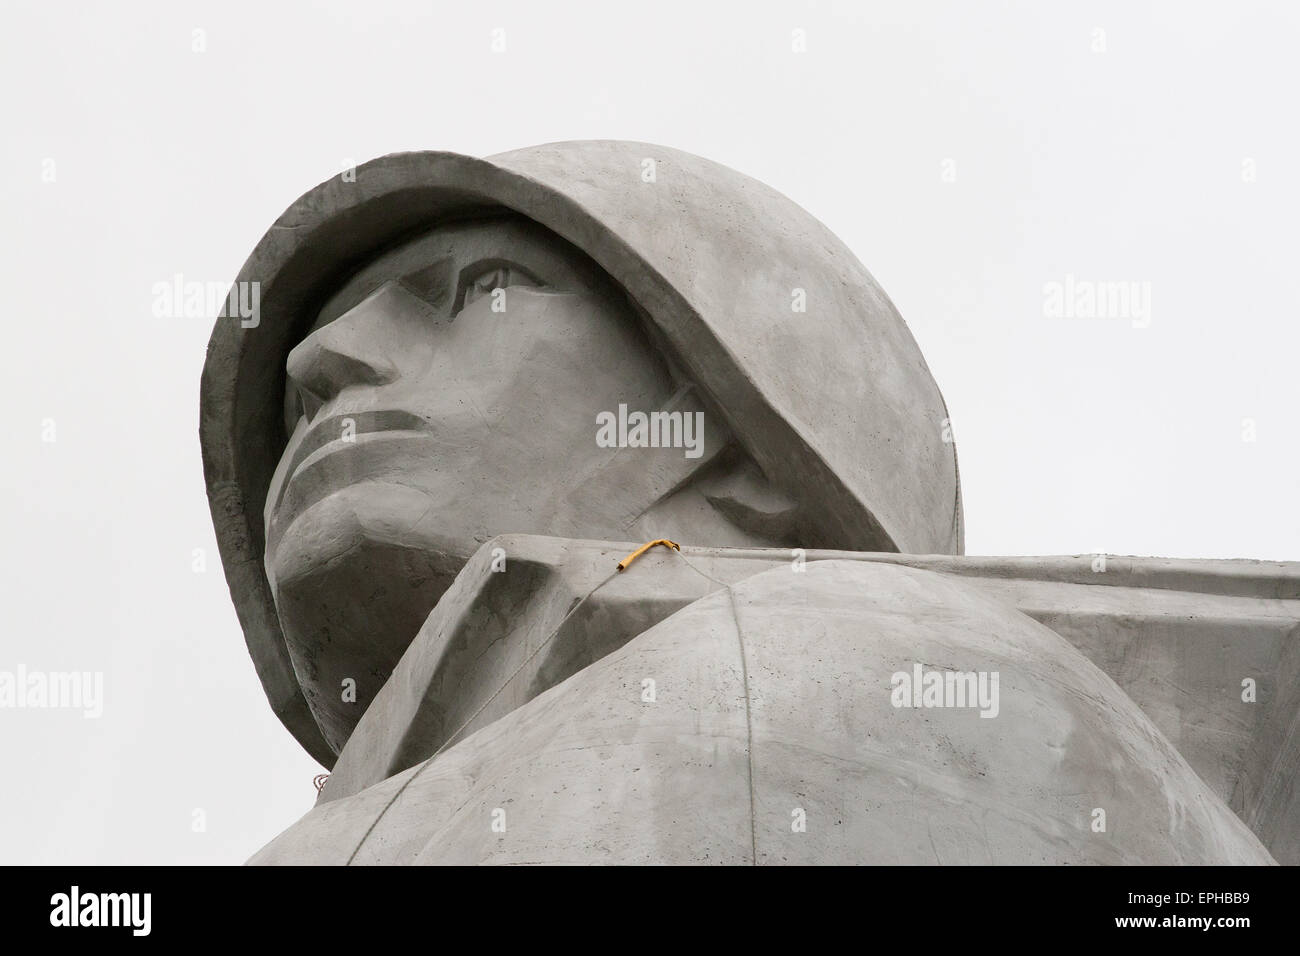 Alyosha, a monument to the defenders of the Soviet Arctic during the Great Patriotic War in Murmansk, Russia. - Stock Image